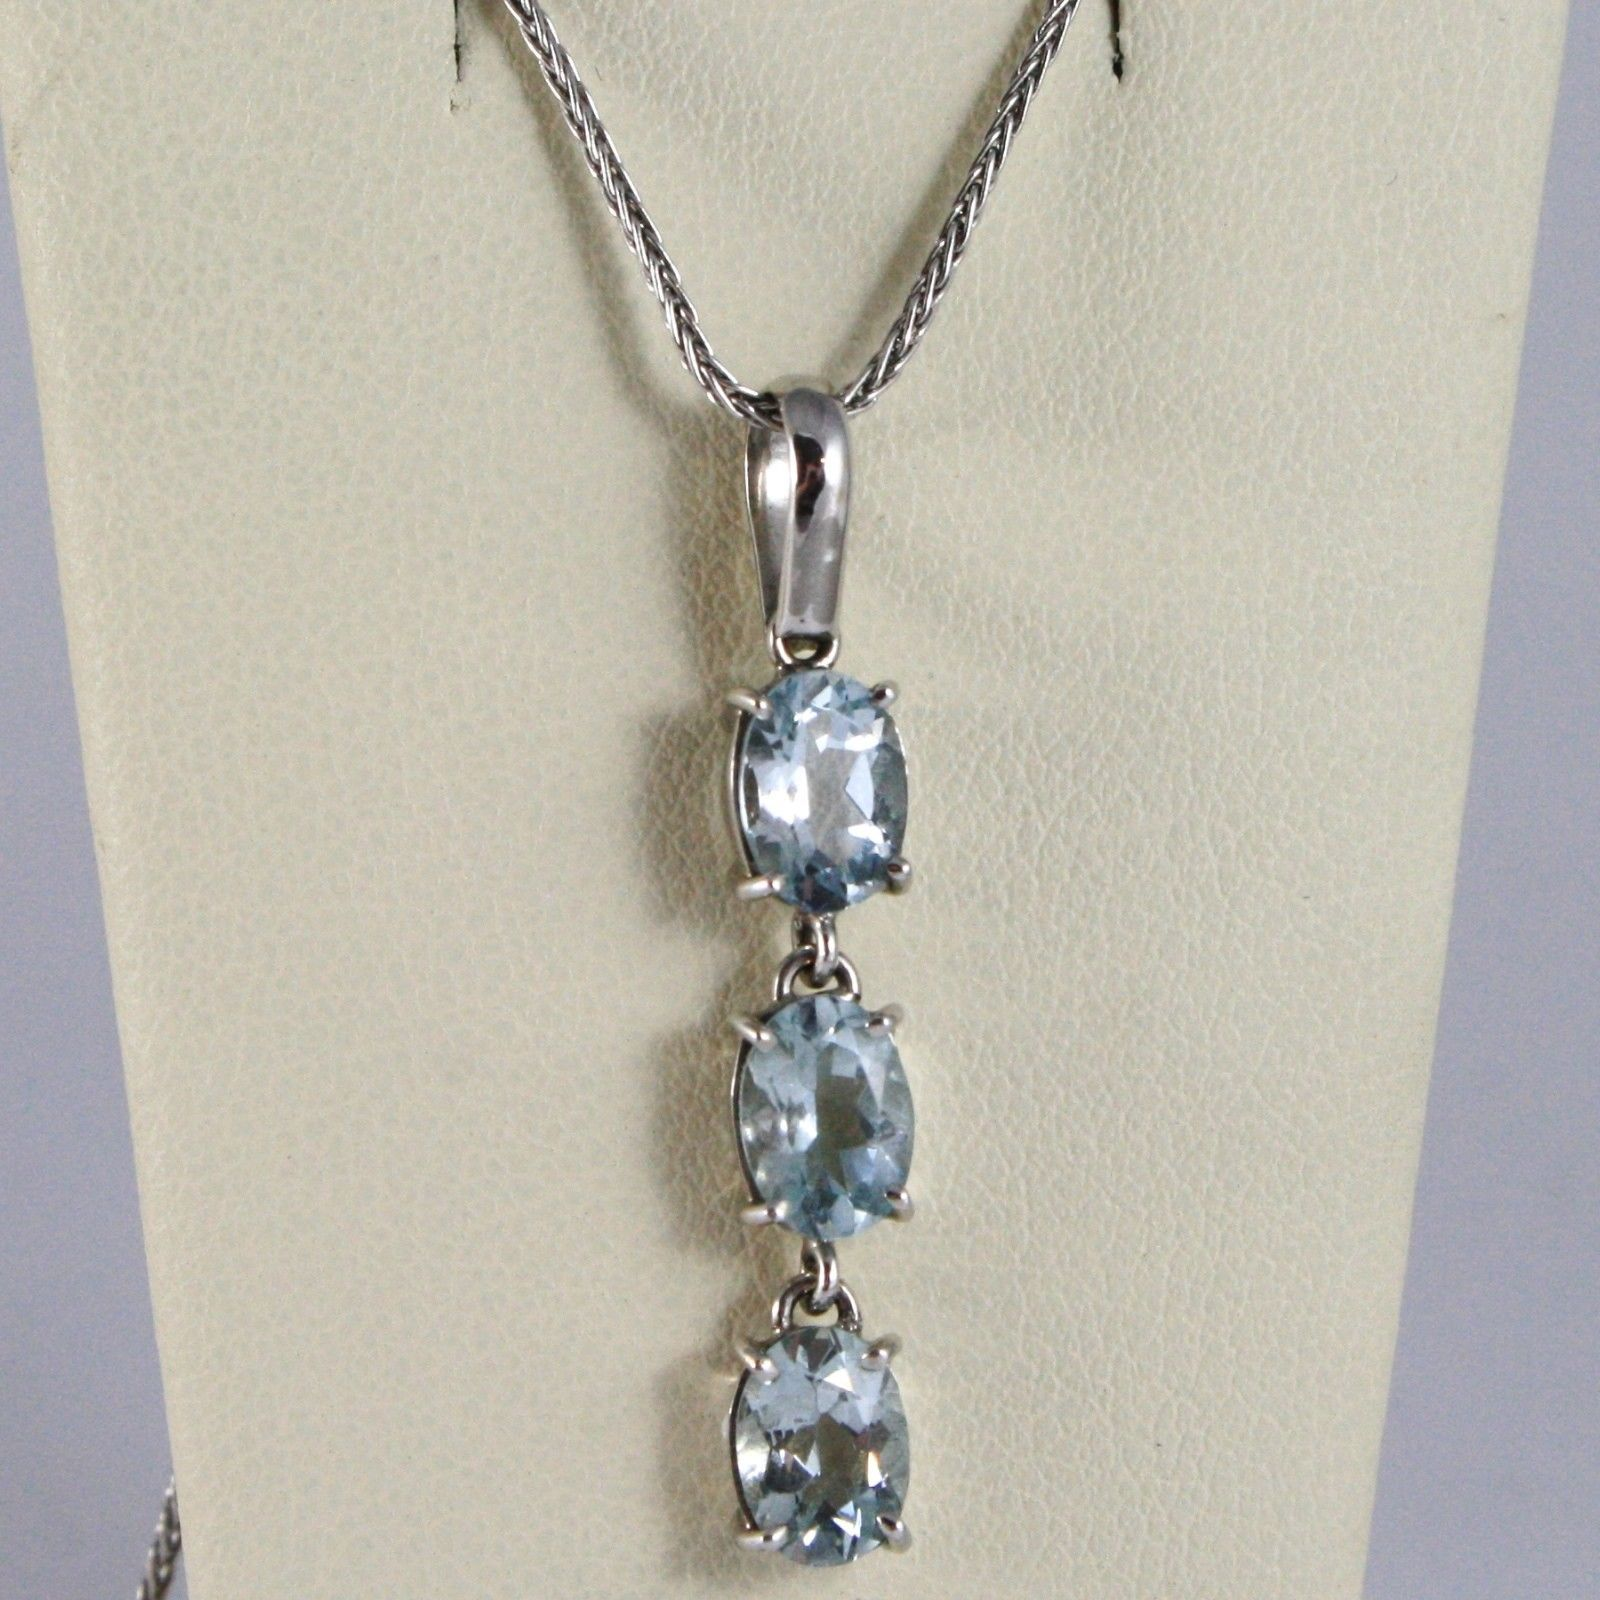 NECKLACE WHITE GOLD 750 - 18K, TRILOGY AQUAMARINE OVAL CT 2.10, CHAIN SPIKE